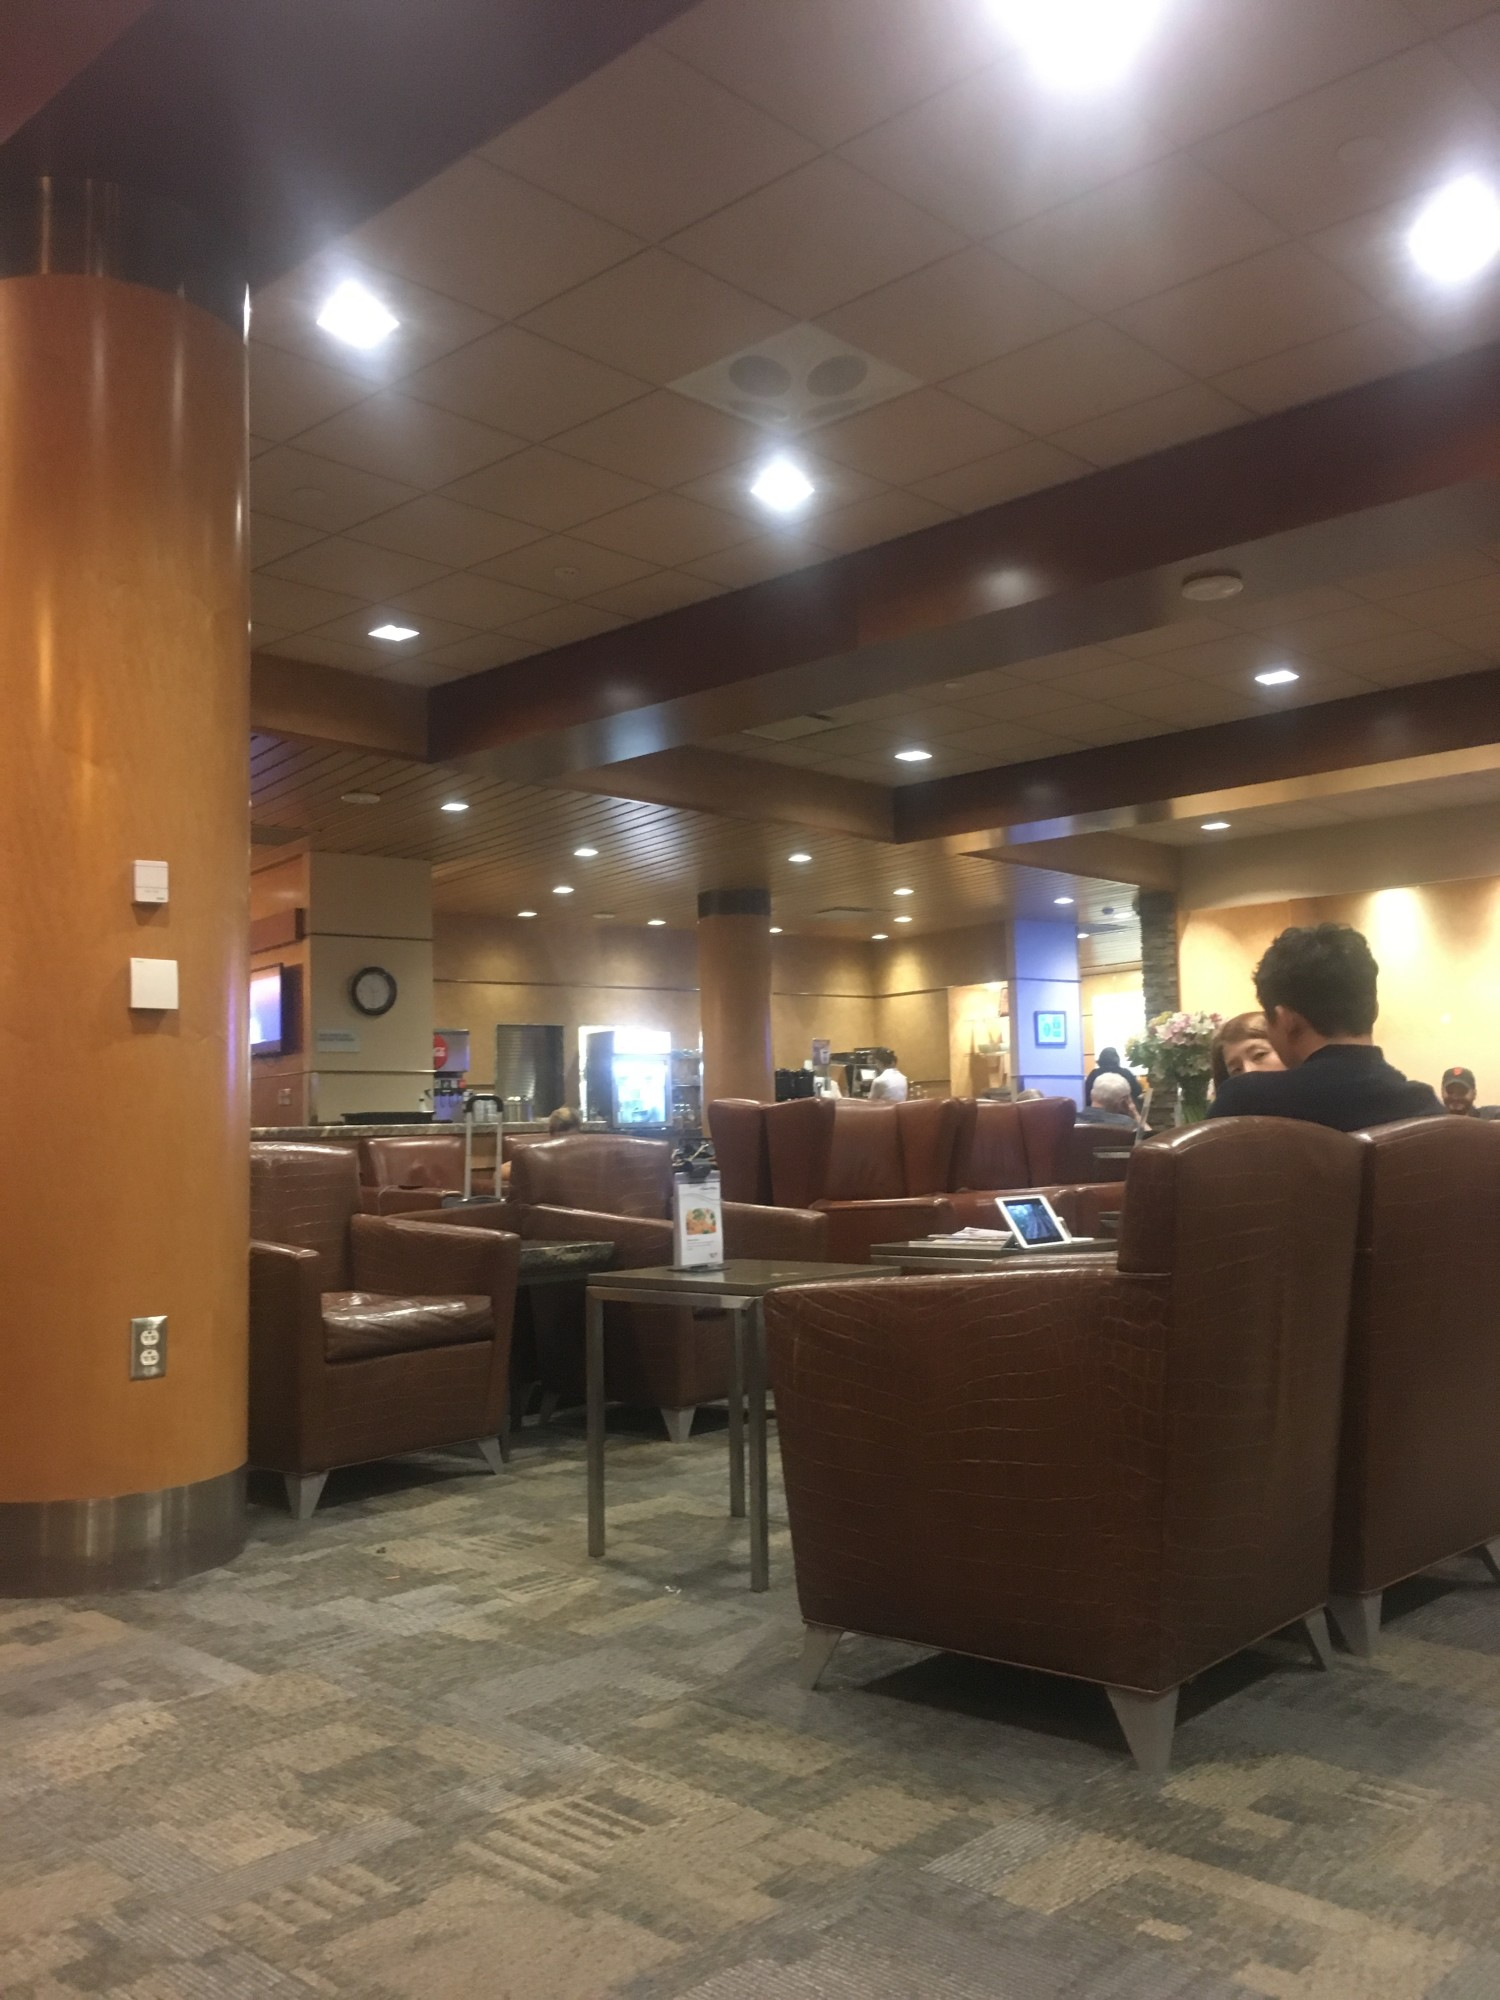 Lax Alaska Airlines Alaska Lounge Reviews Amp Photos